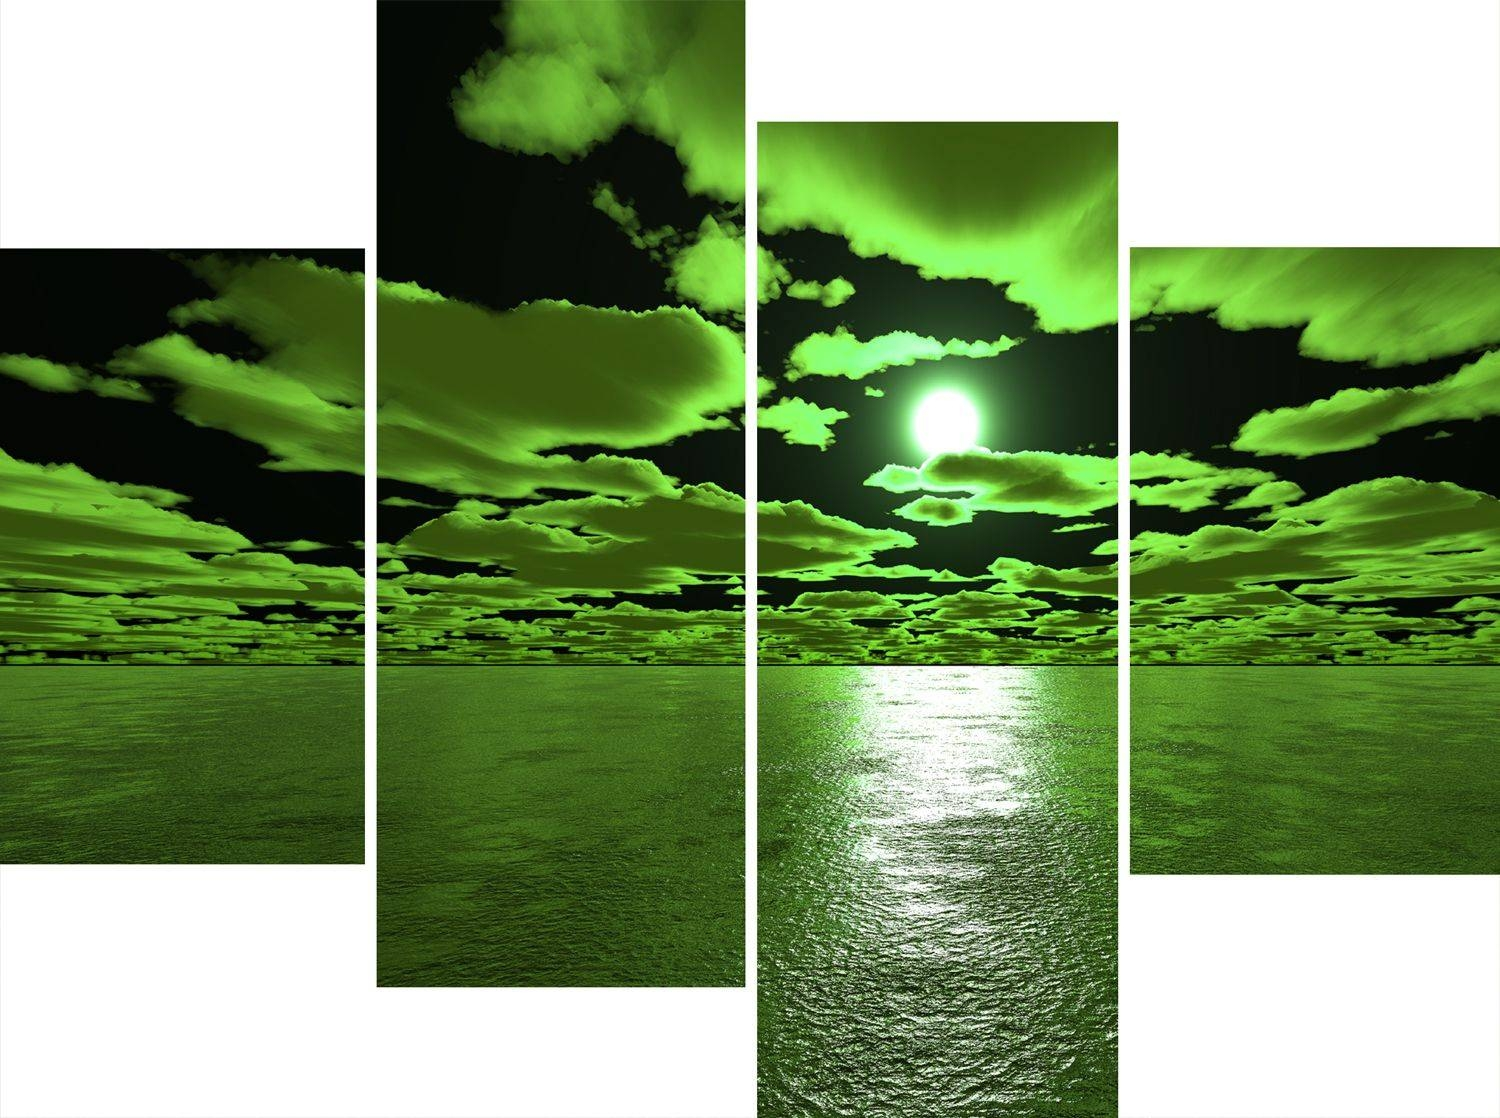 Wall Art Designs: Green Wall Art 3 Green Canvas Wall Decor Large 4 With Regard To Most Popular Lime Green Wall Art (View 17 of 20)